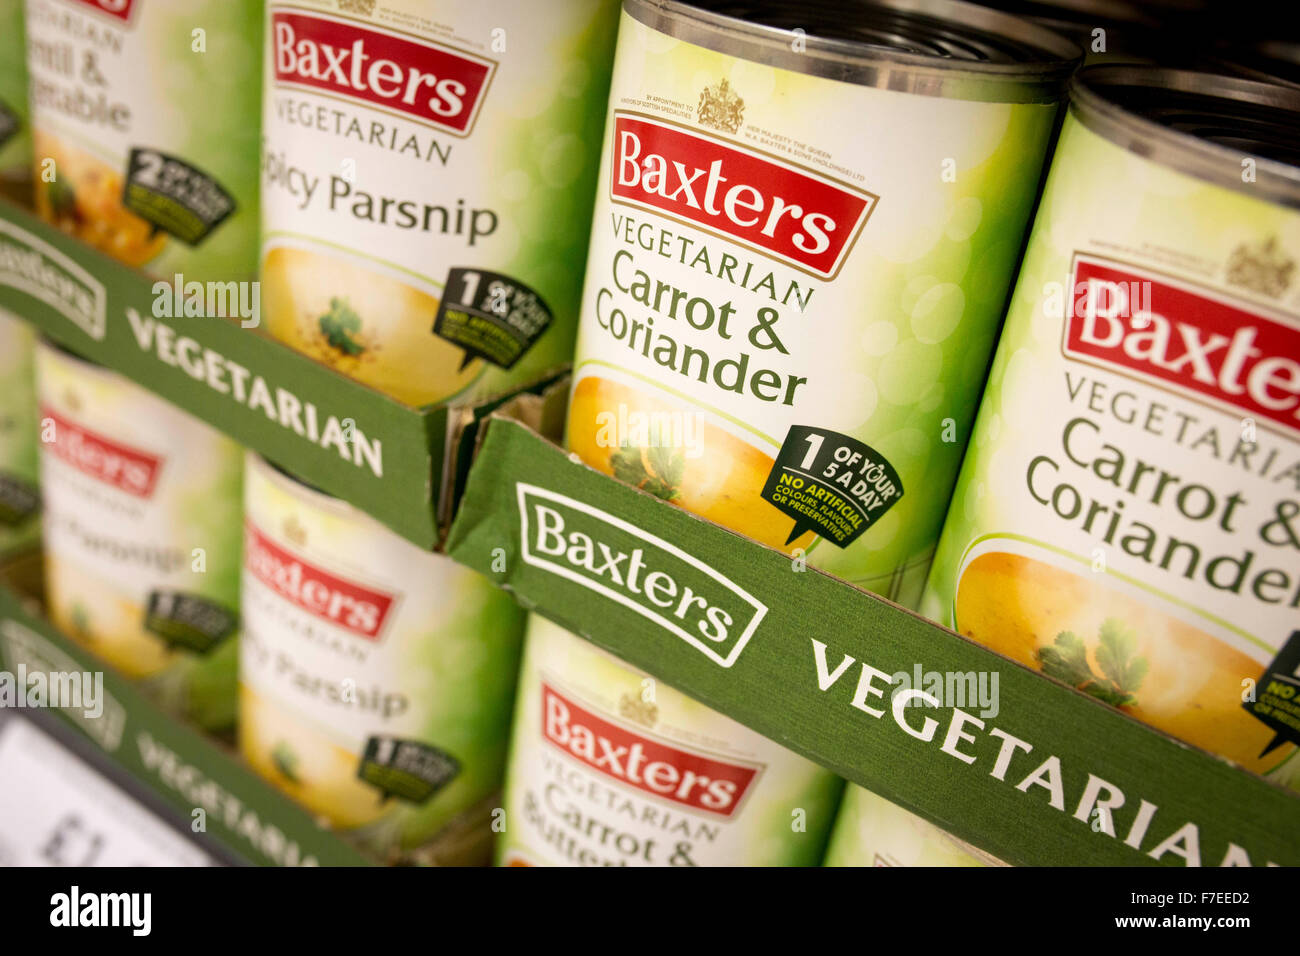 tins of Baxters soup in a supermarket - Stock Image